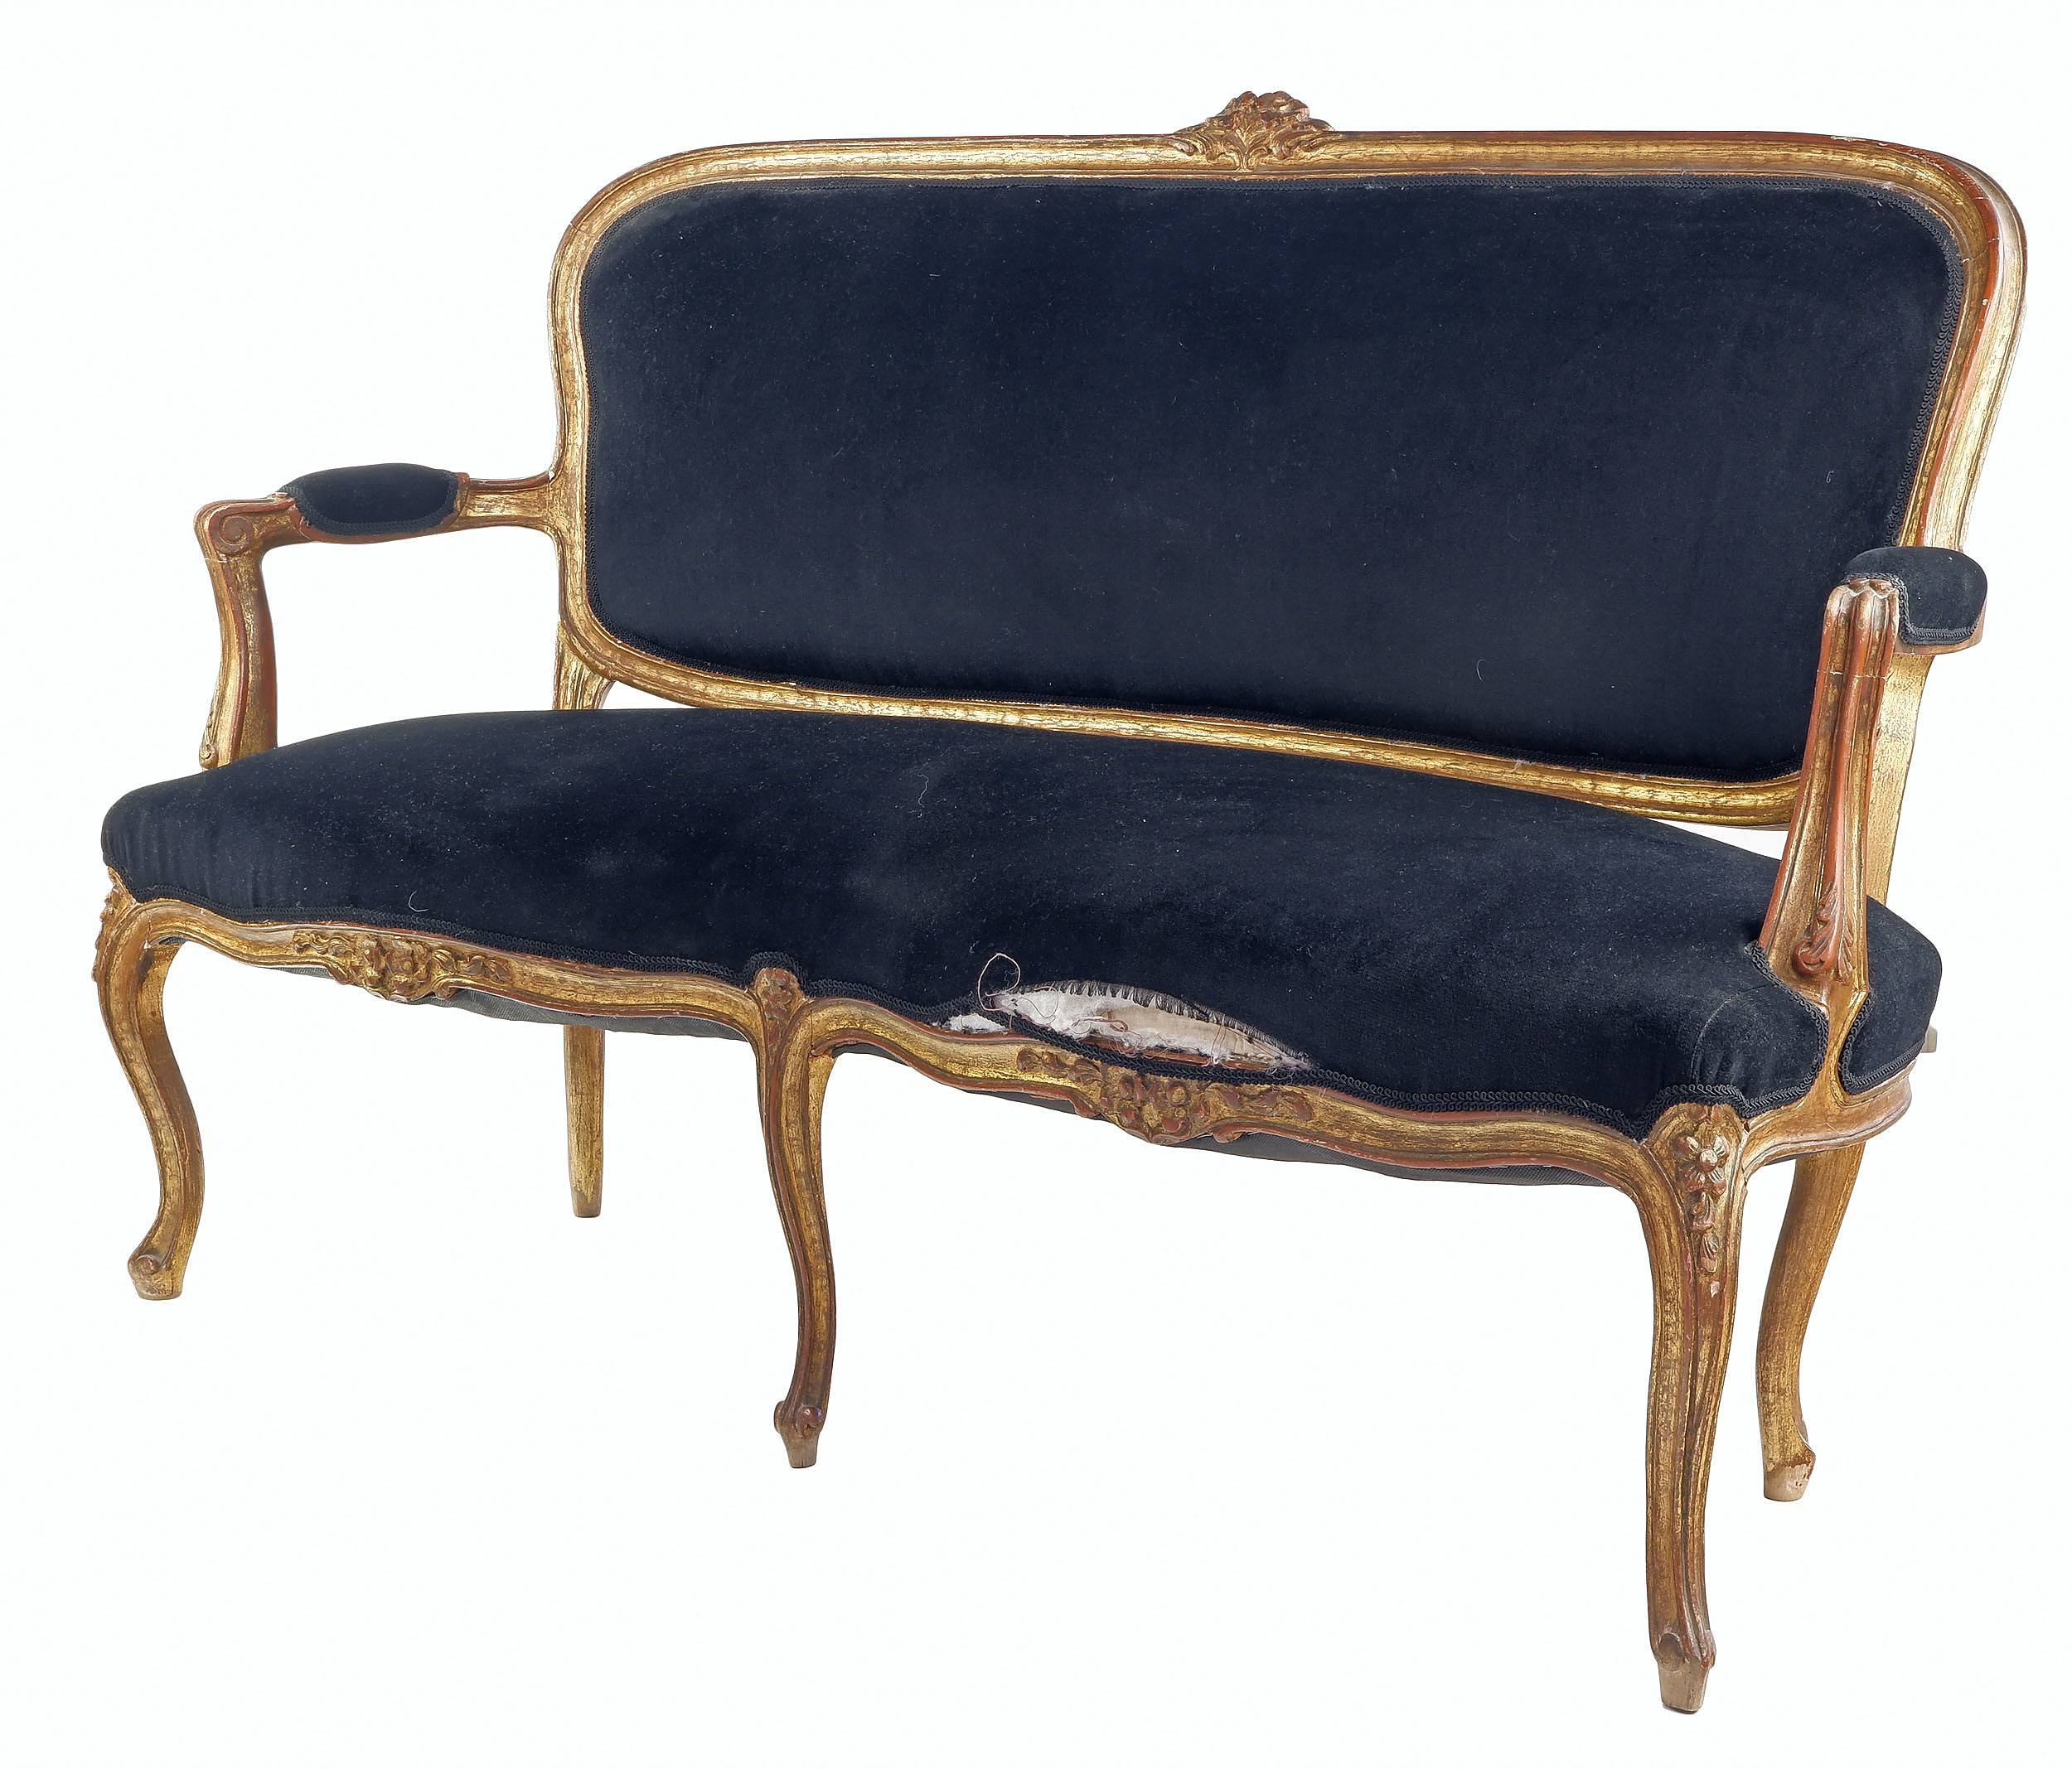 'Vintage Louis XV Style Carved Giltwood Settee'